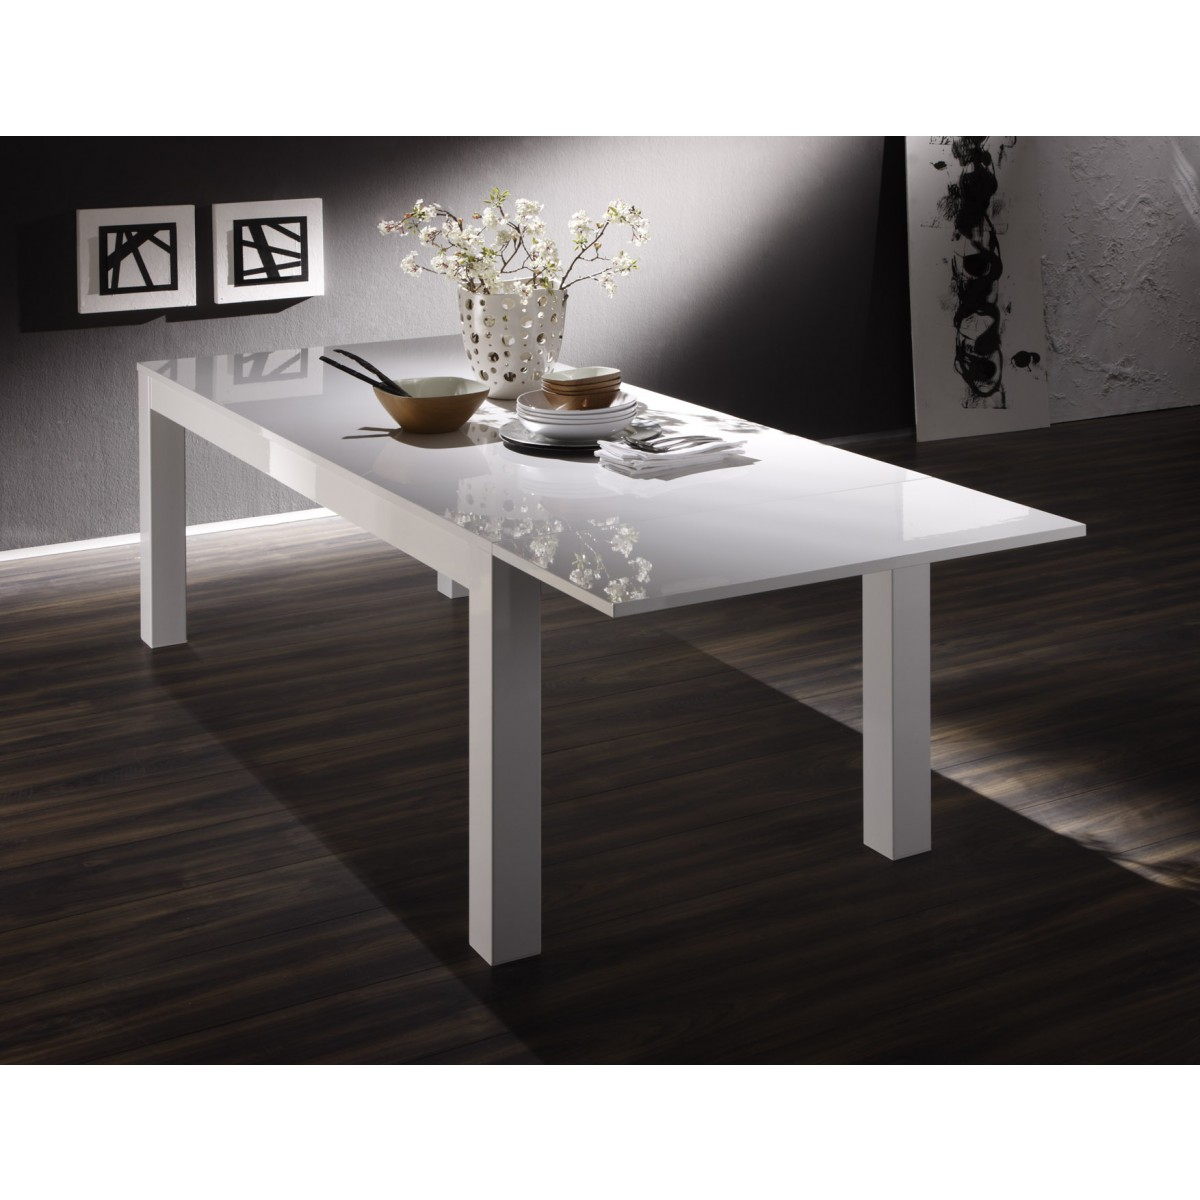 table laquee blanche rectangulaire avec allonge 160 cm. Black Bedroom Furniture Sets. Home Design Ideas